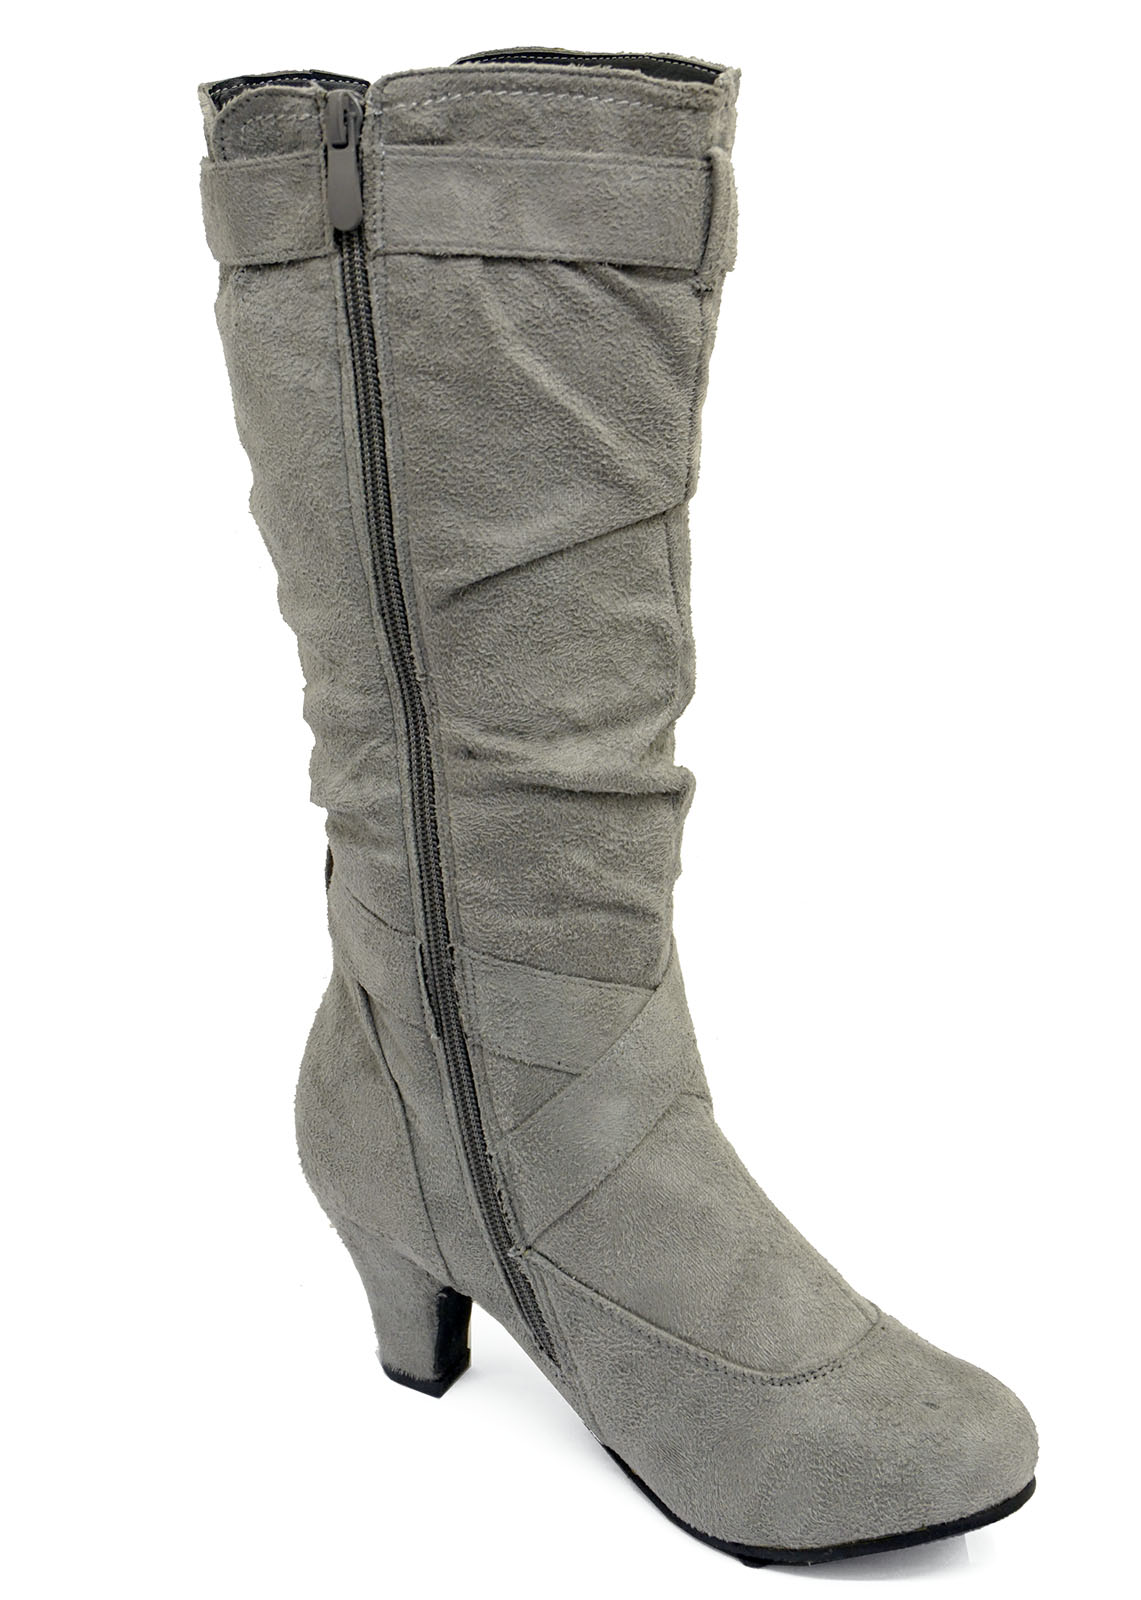 LADIES-GREY-ZIP-UP-BIKER-SLOUCH-RUCHED-TALL-KNEE-CALF-LOW-HEEL-BOOTS-SHOES-4-10 thumbnail 19